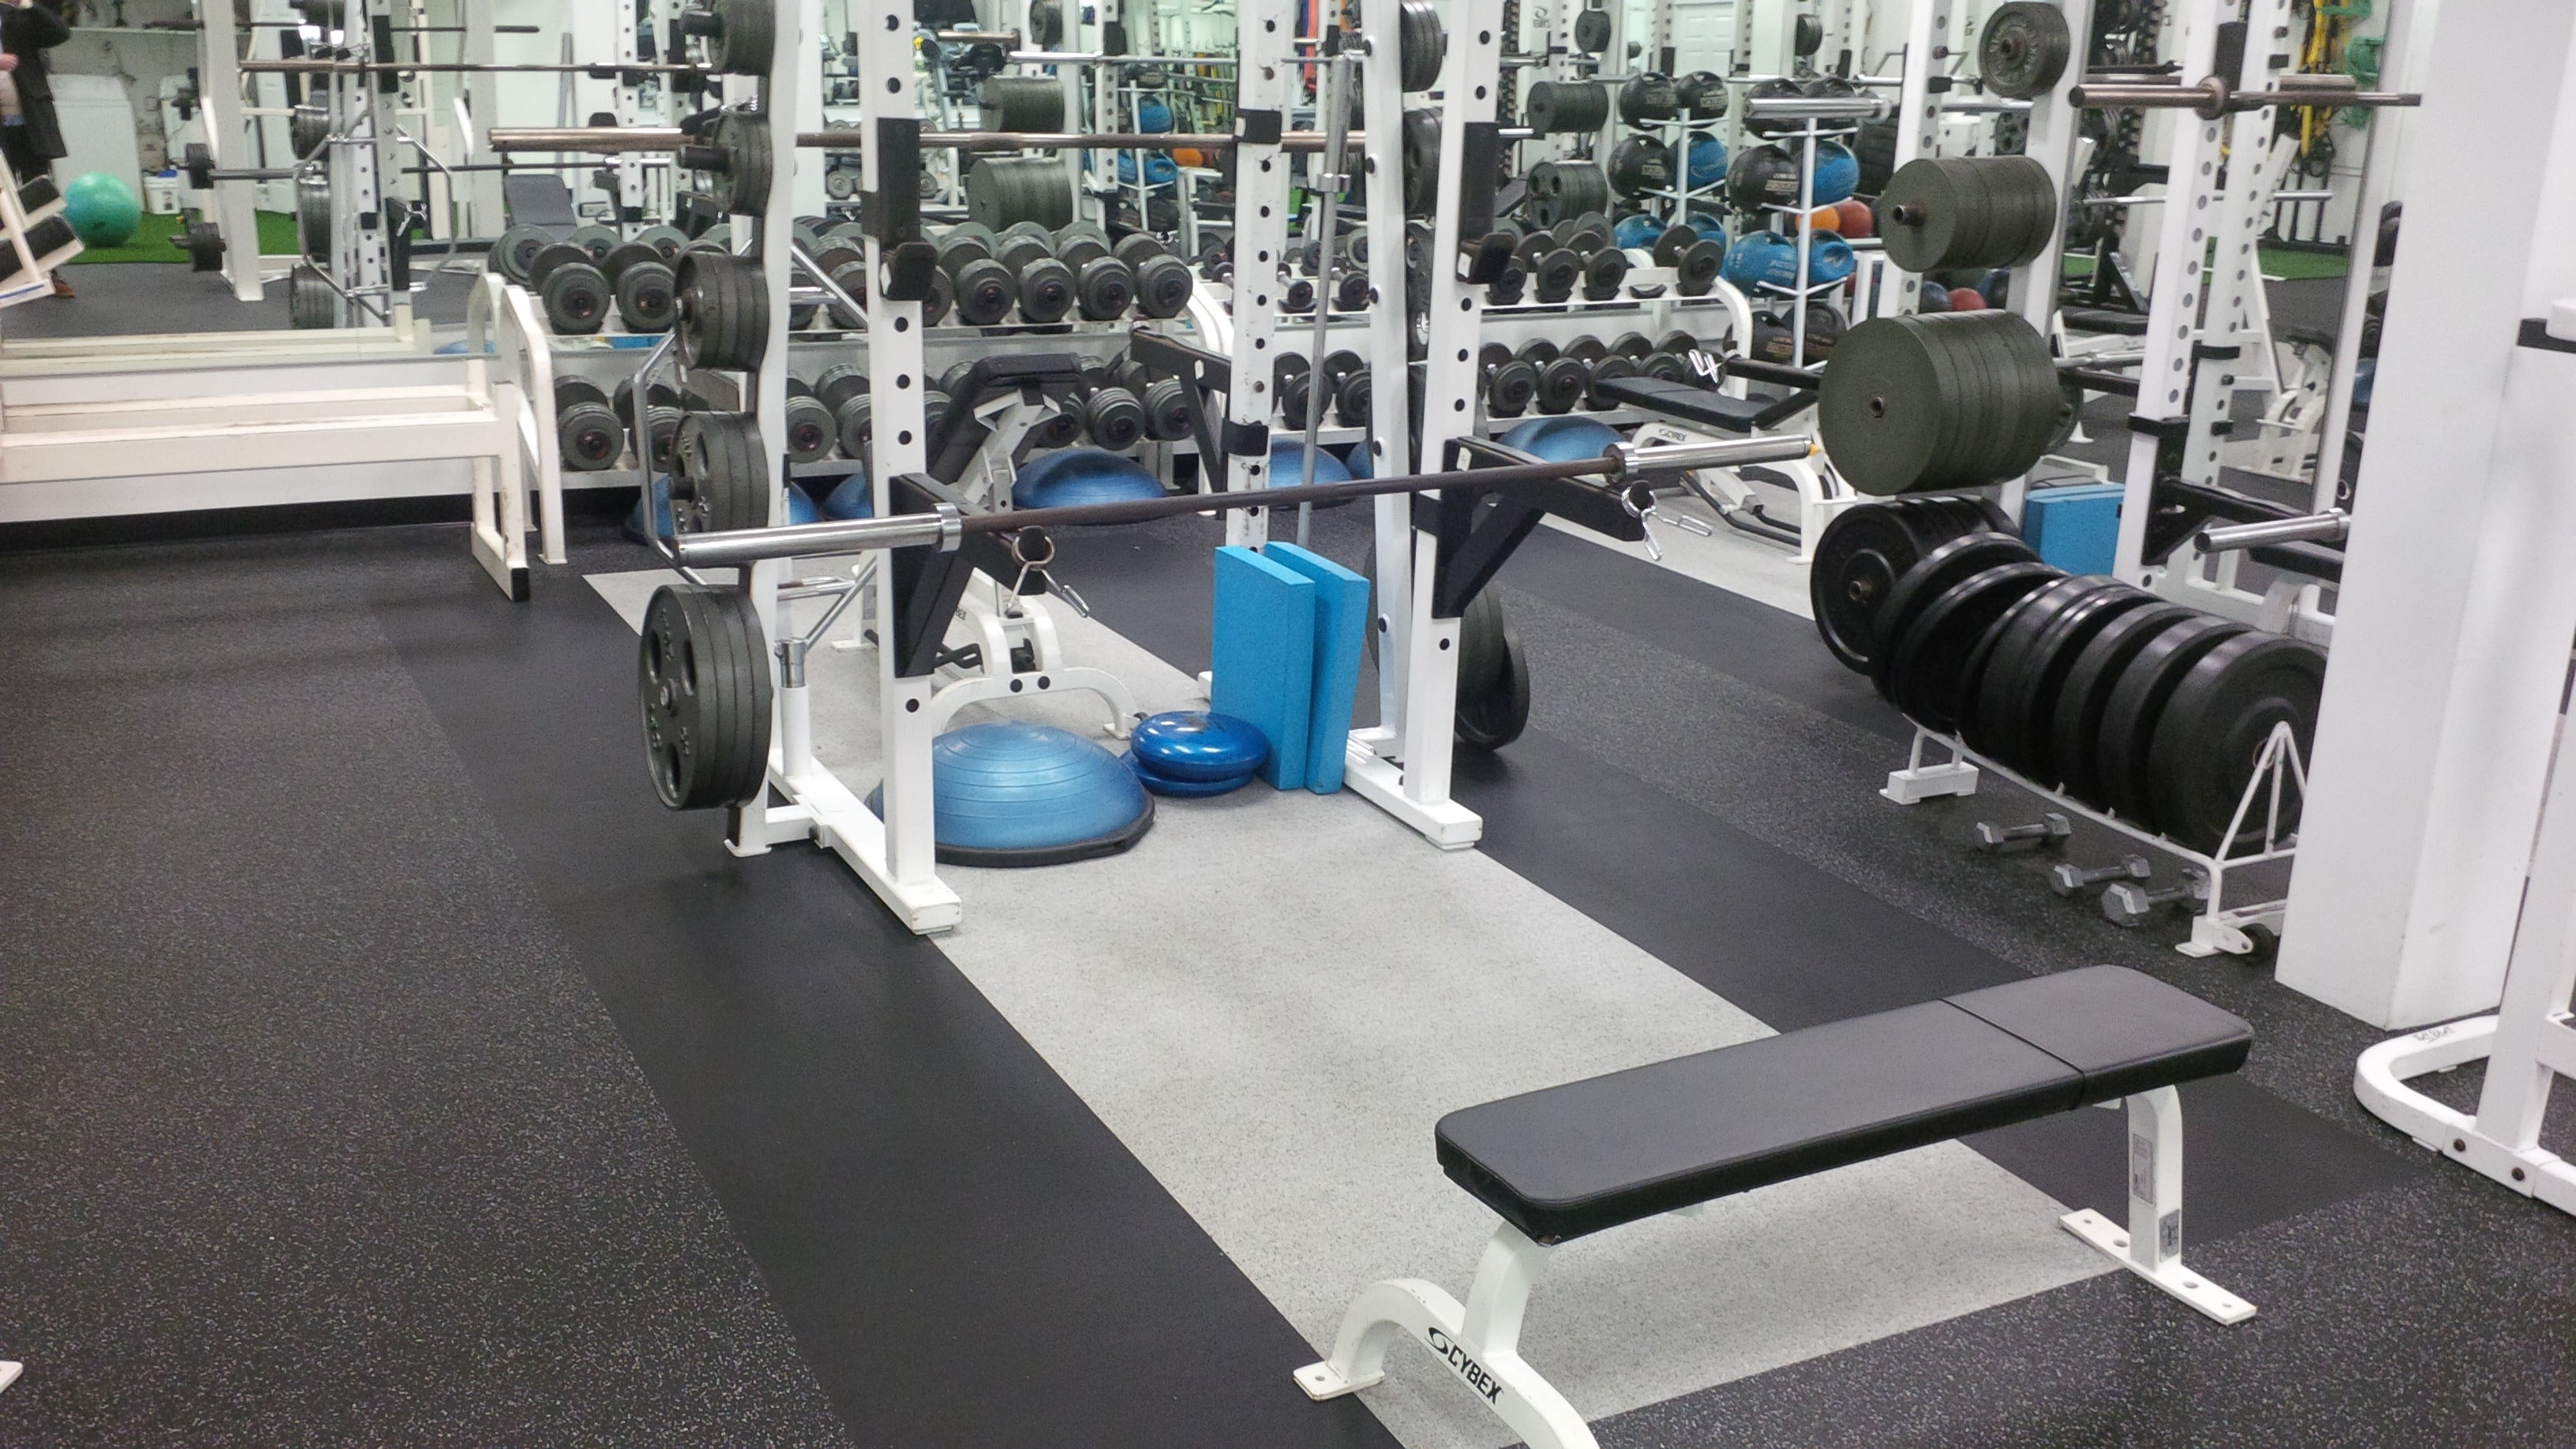 Rubber flooring in a small weightlifting gym.